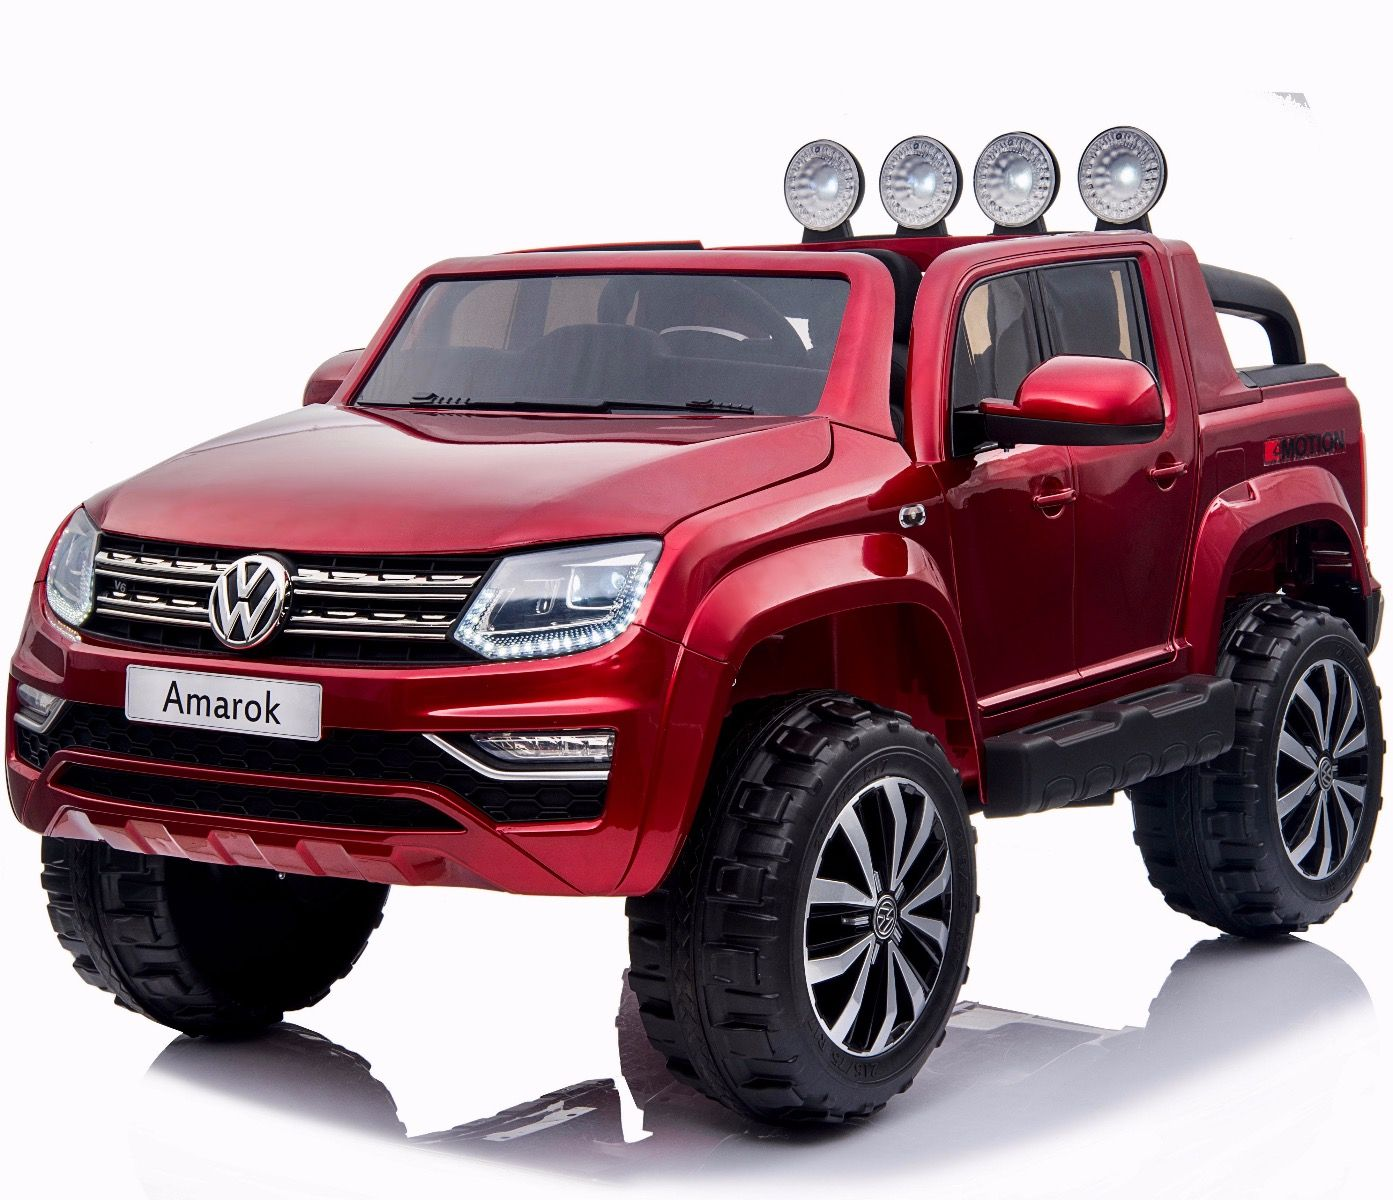 VW Amarok Licensed 4WD 24V Children's Battery Ride On Jeep - Red